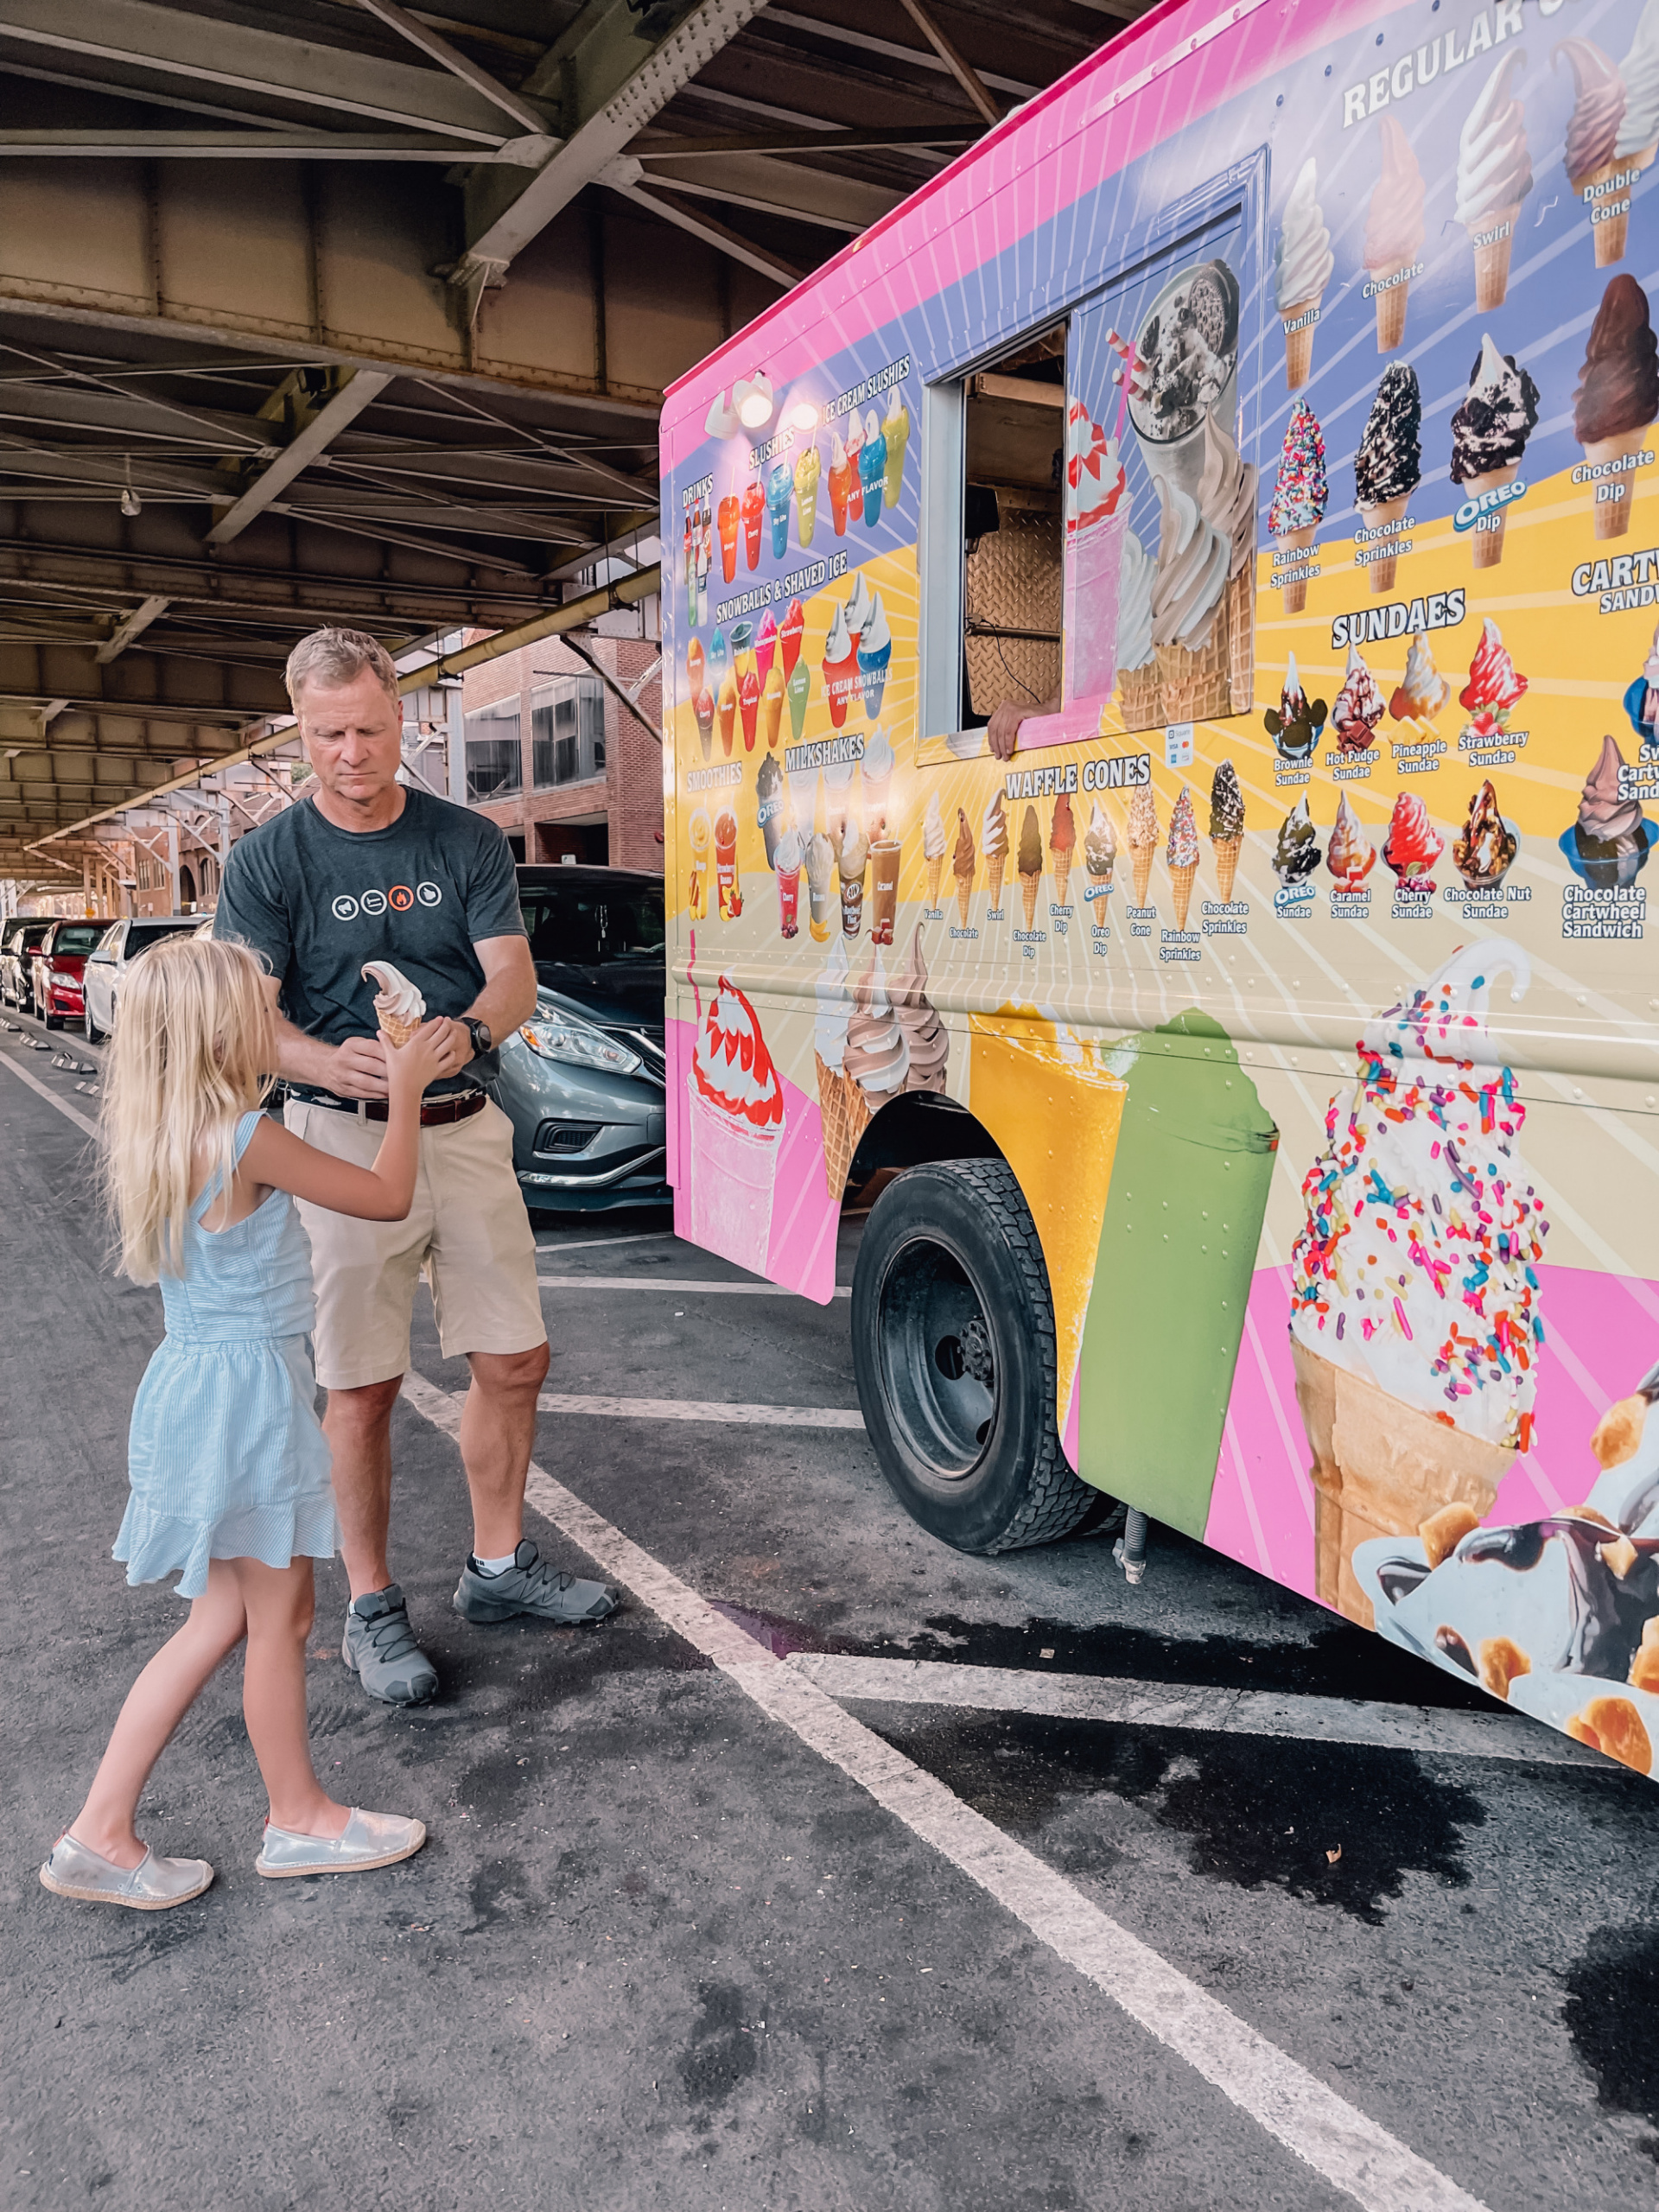 where to stop on a cross-country road trip, best places to stop on a cross country road trip, cross country road trip, west coast to east coast road trip, erin busbee, traveling with kids, how to travel with kids, how to travel with a dog, cross country road trip with kids, tysons, VA